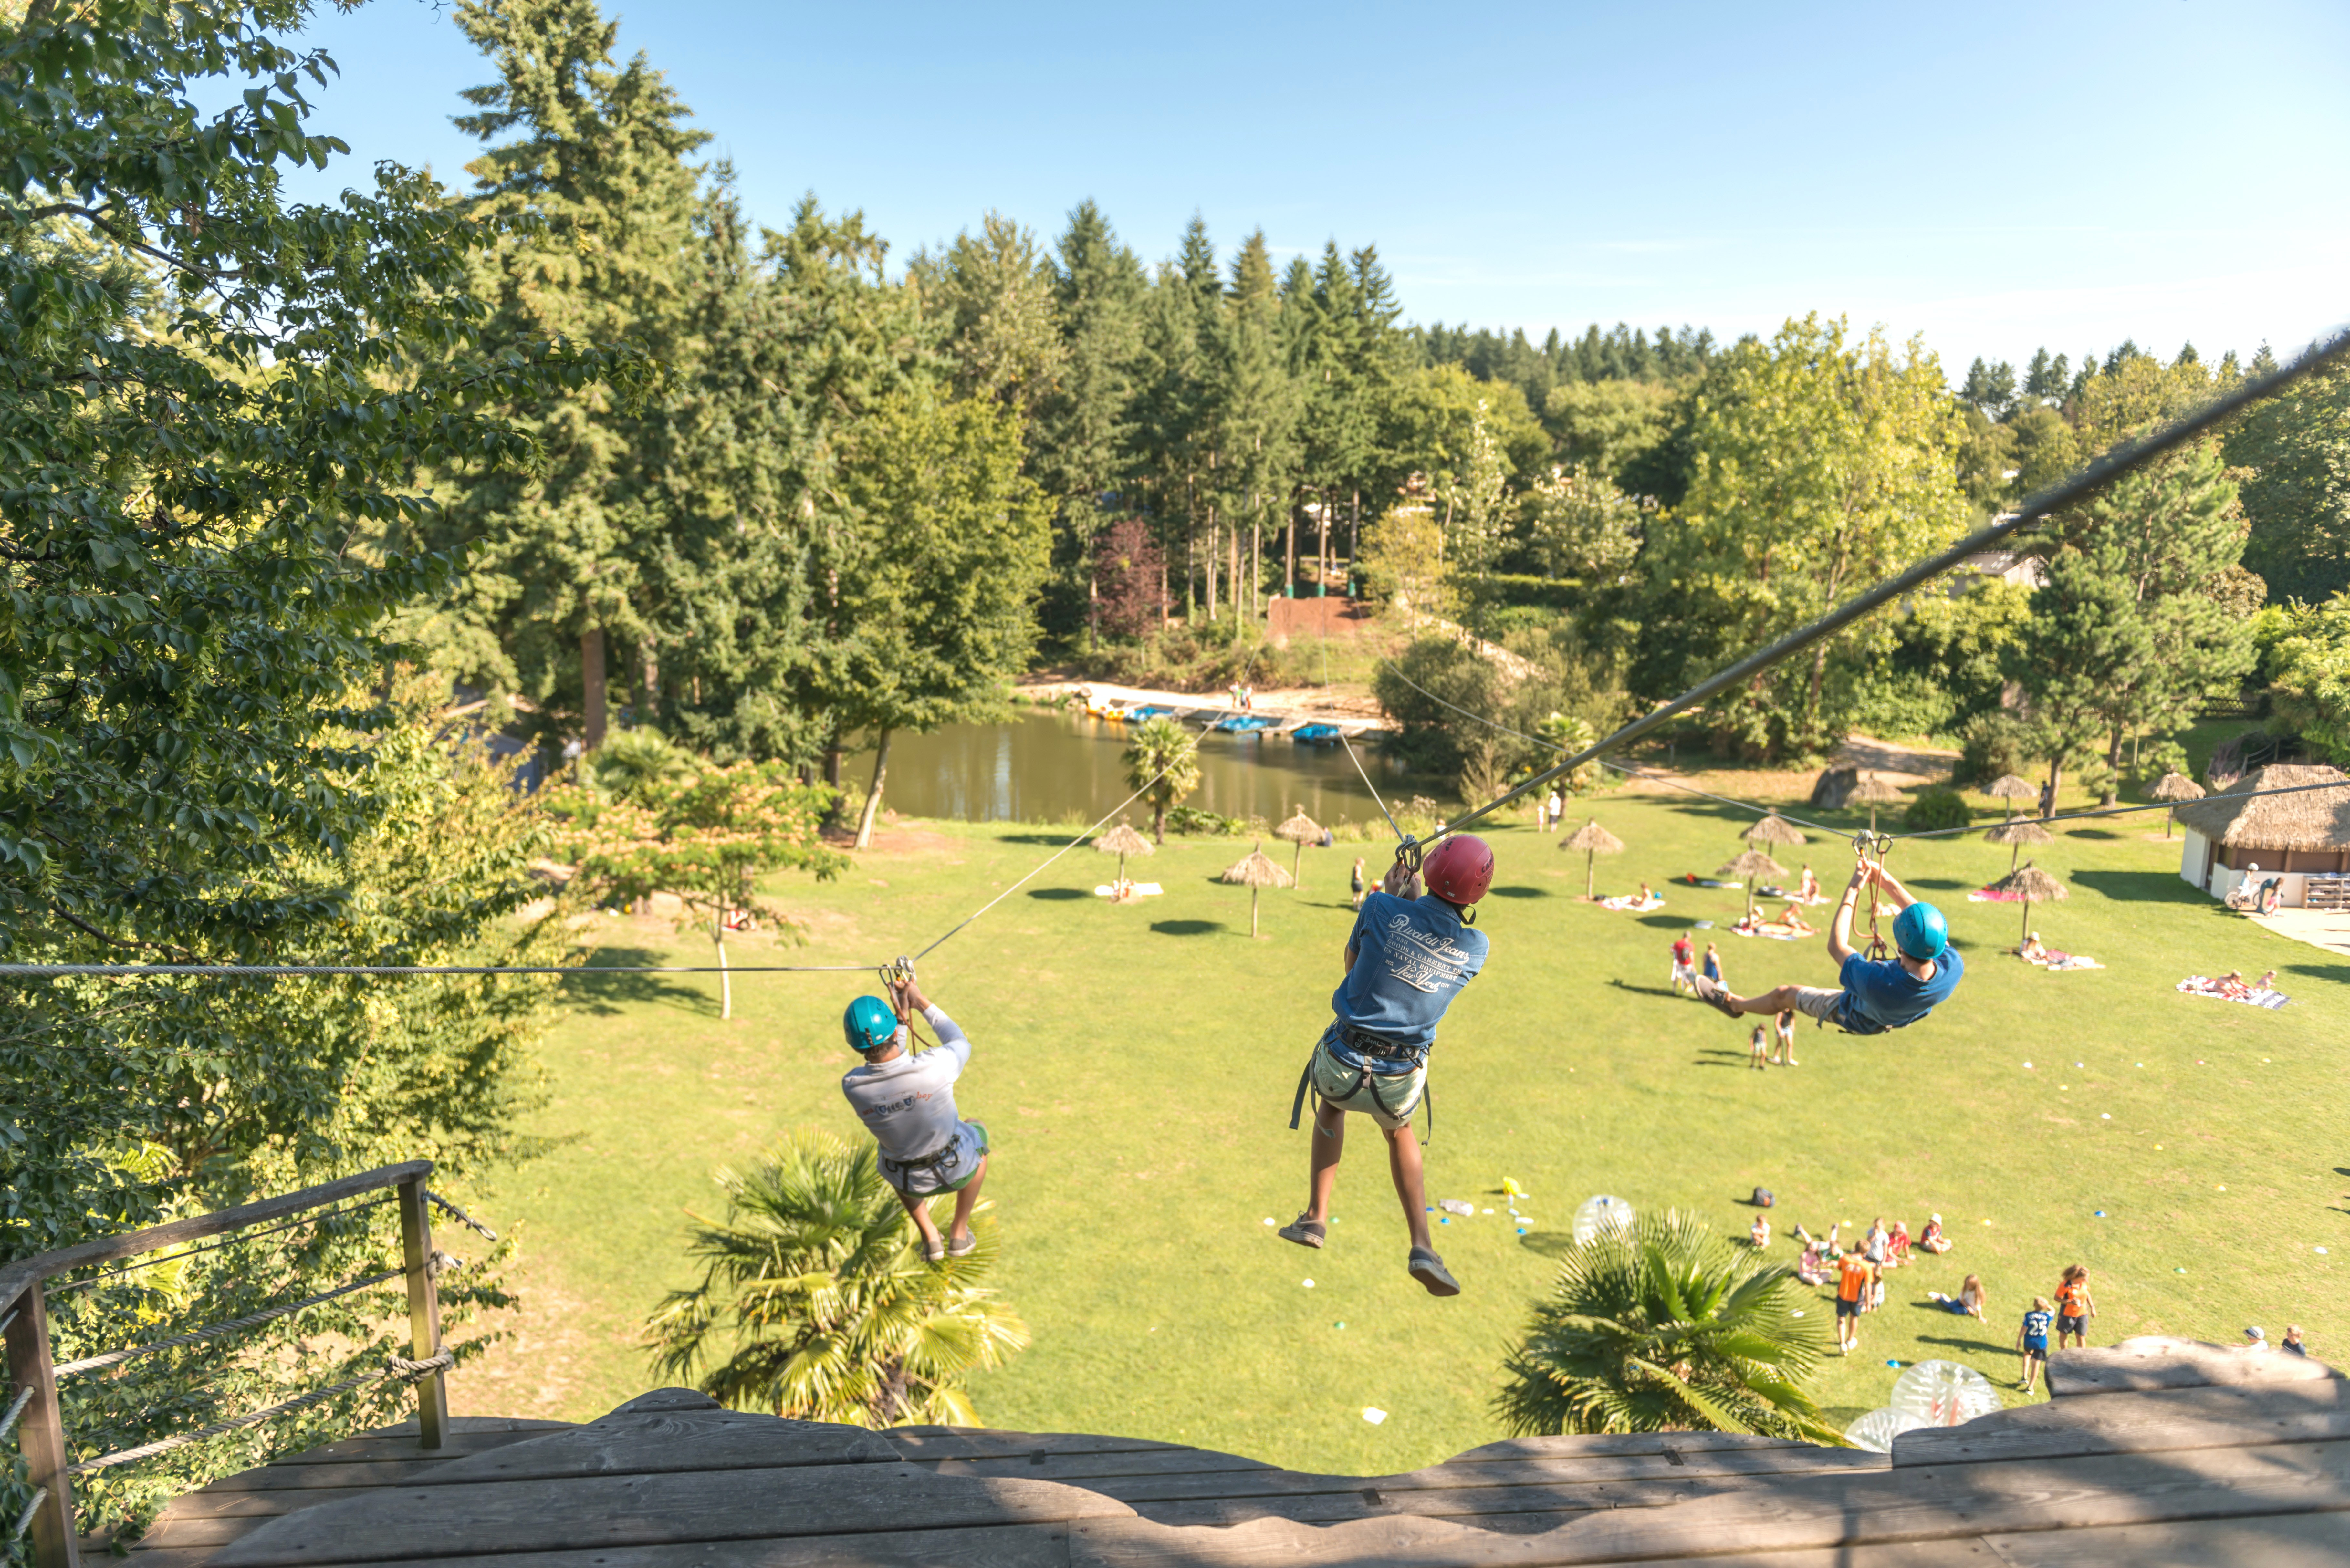 Camping Domaine des Ormes tokkelbaan